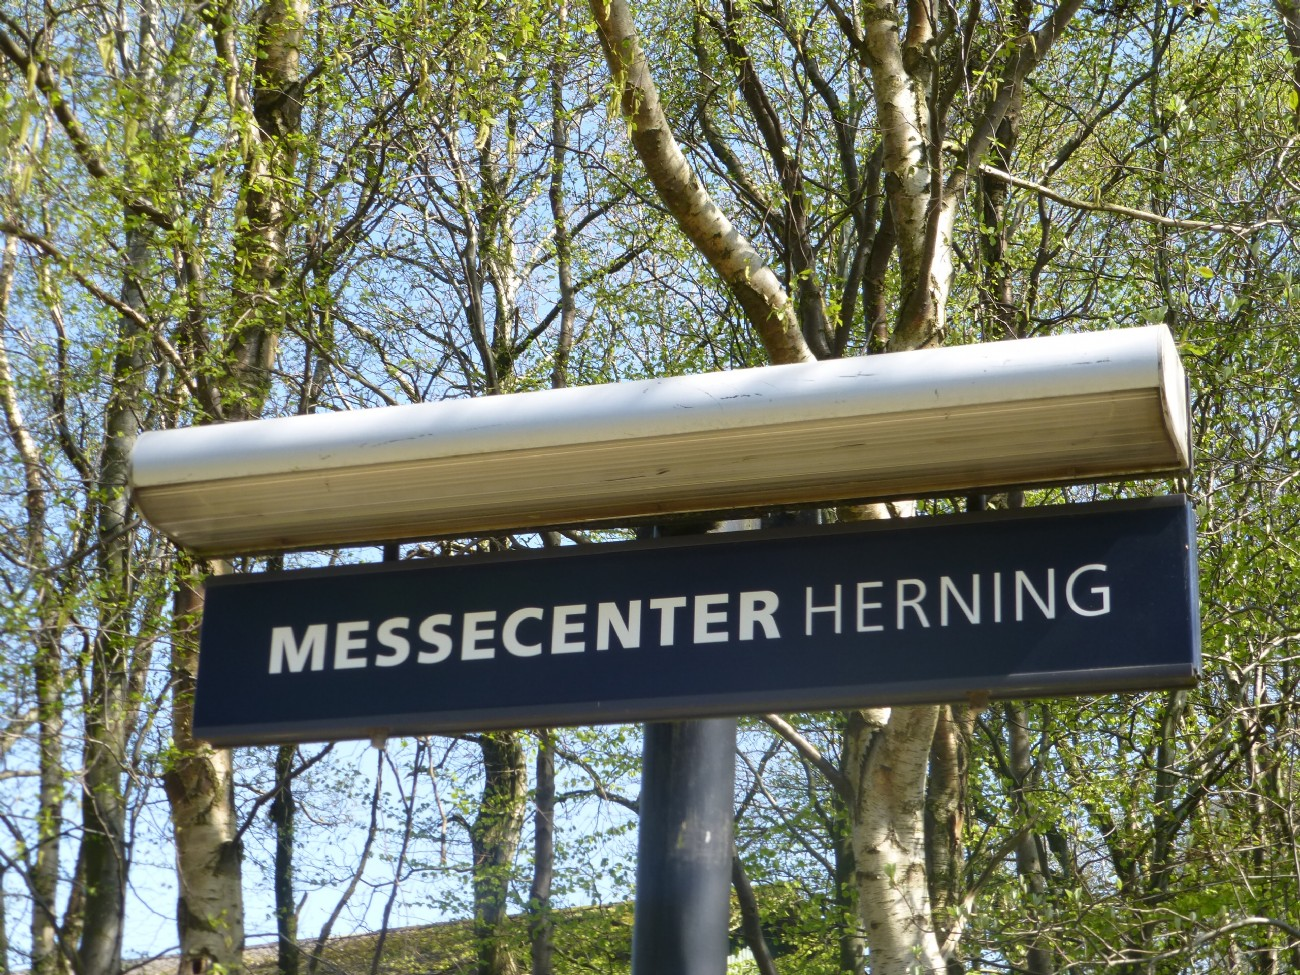 Herning Messecenter